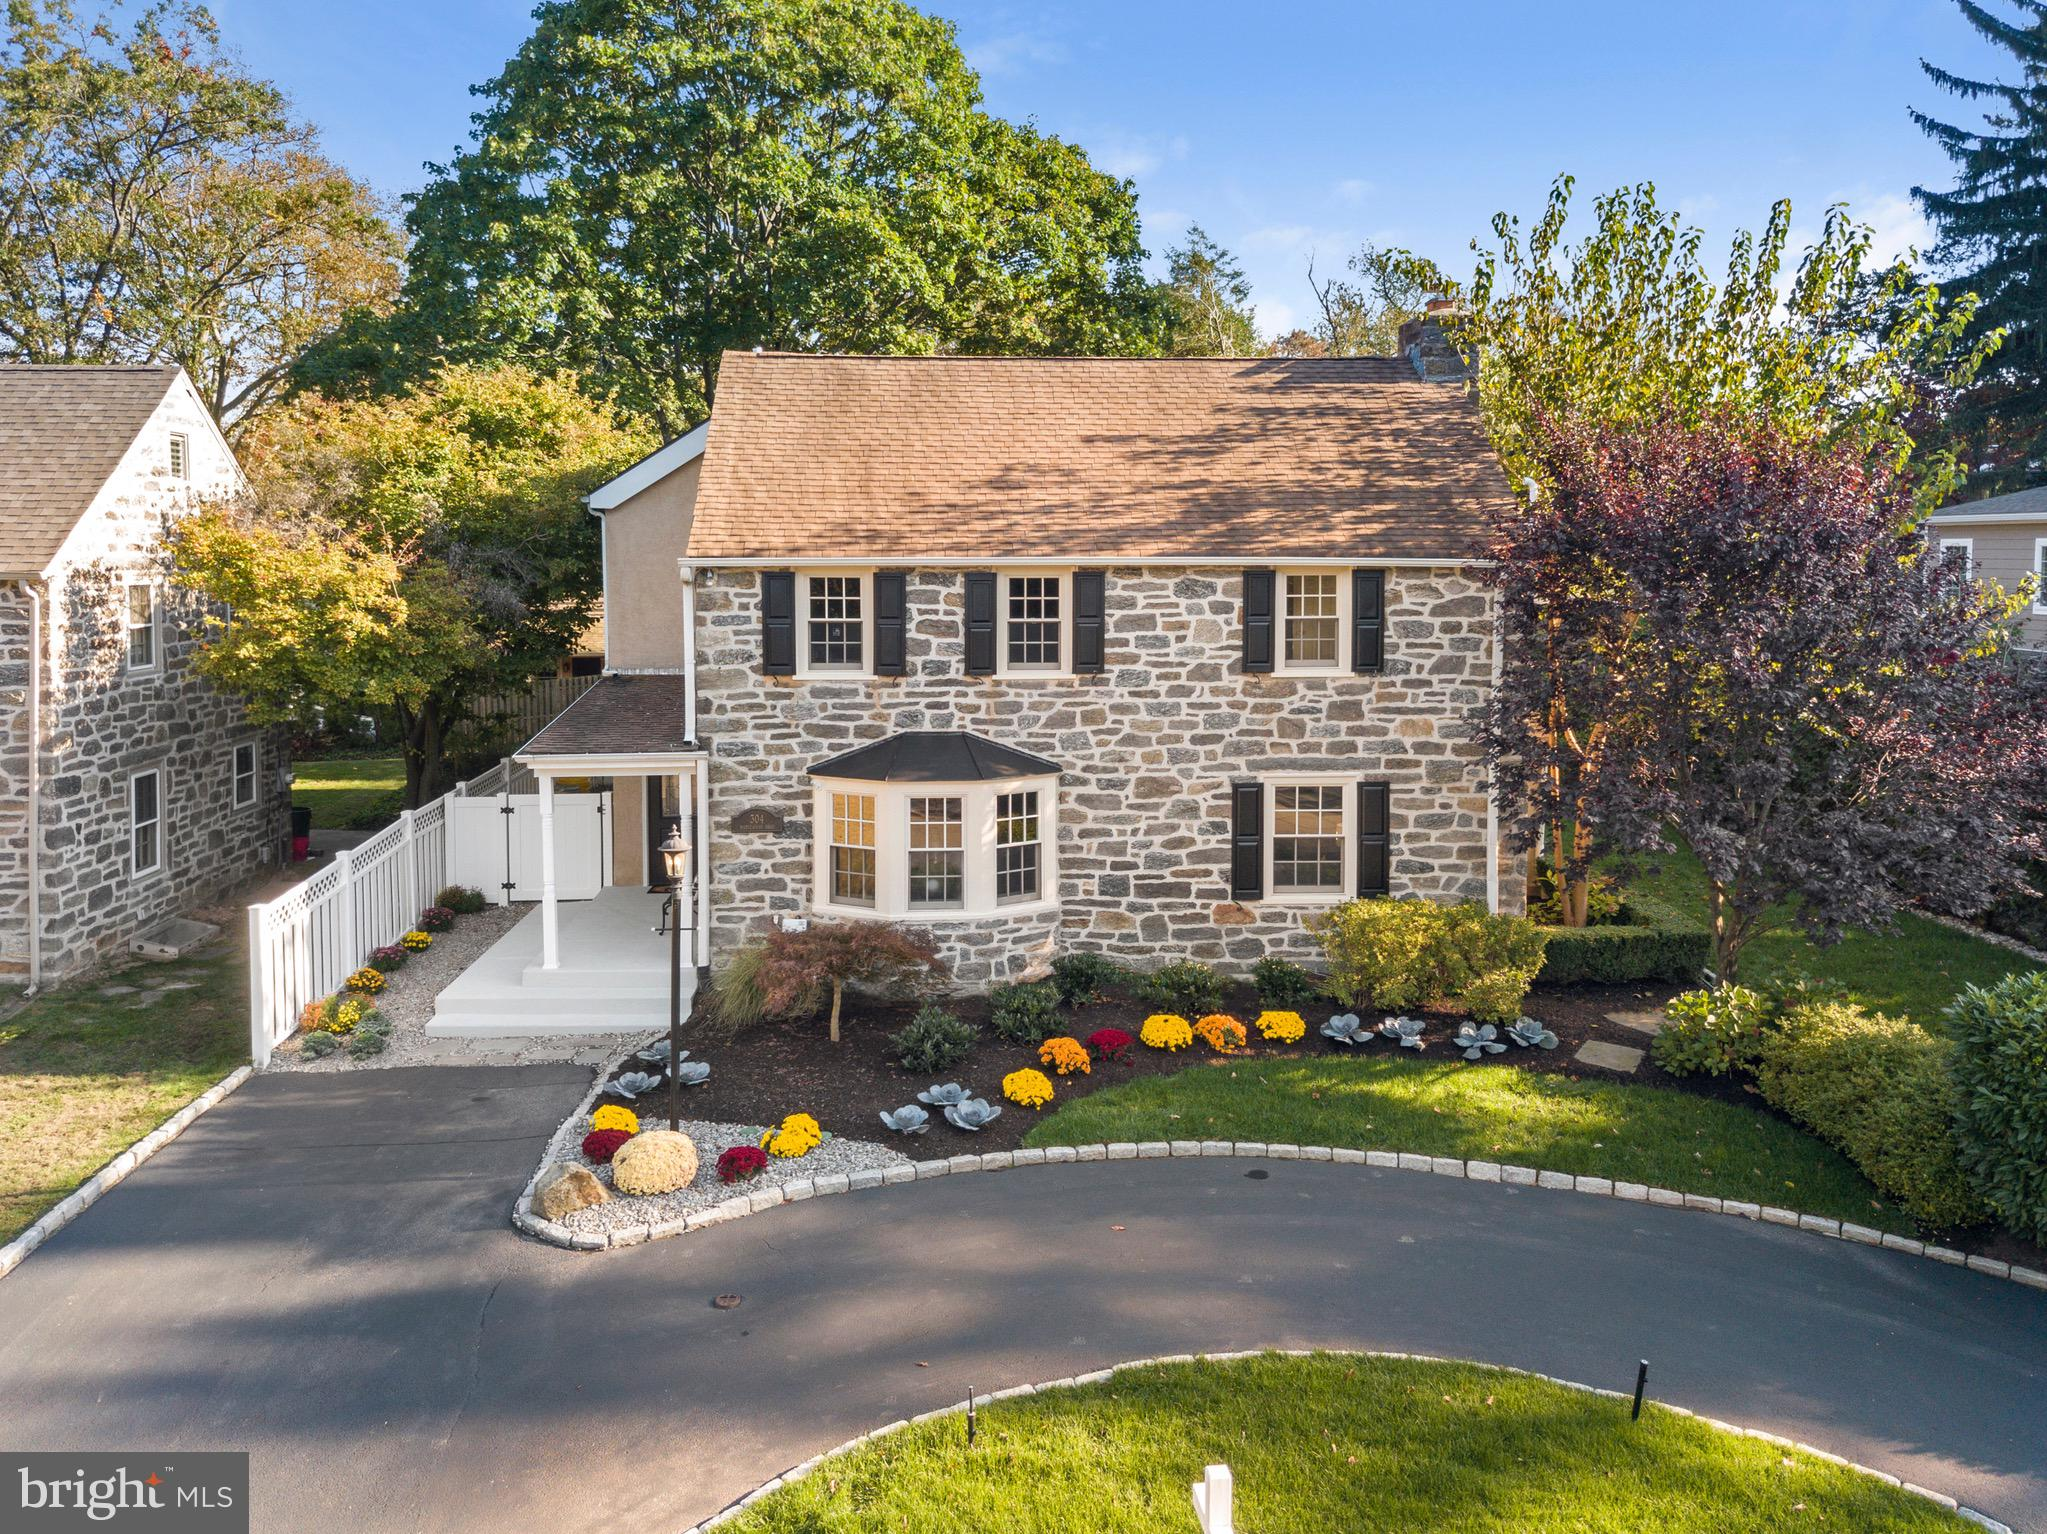 304 MAPLEWOOD ROAD, MERION STATION, PA 19066